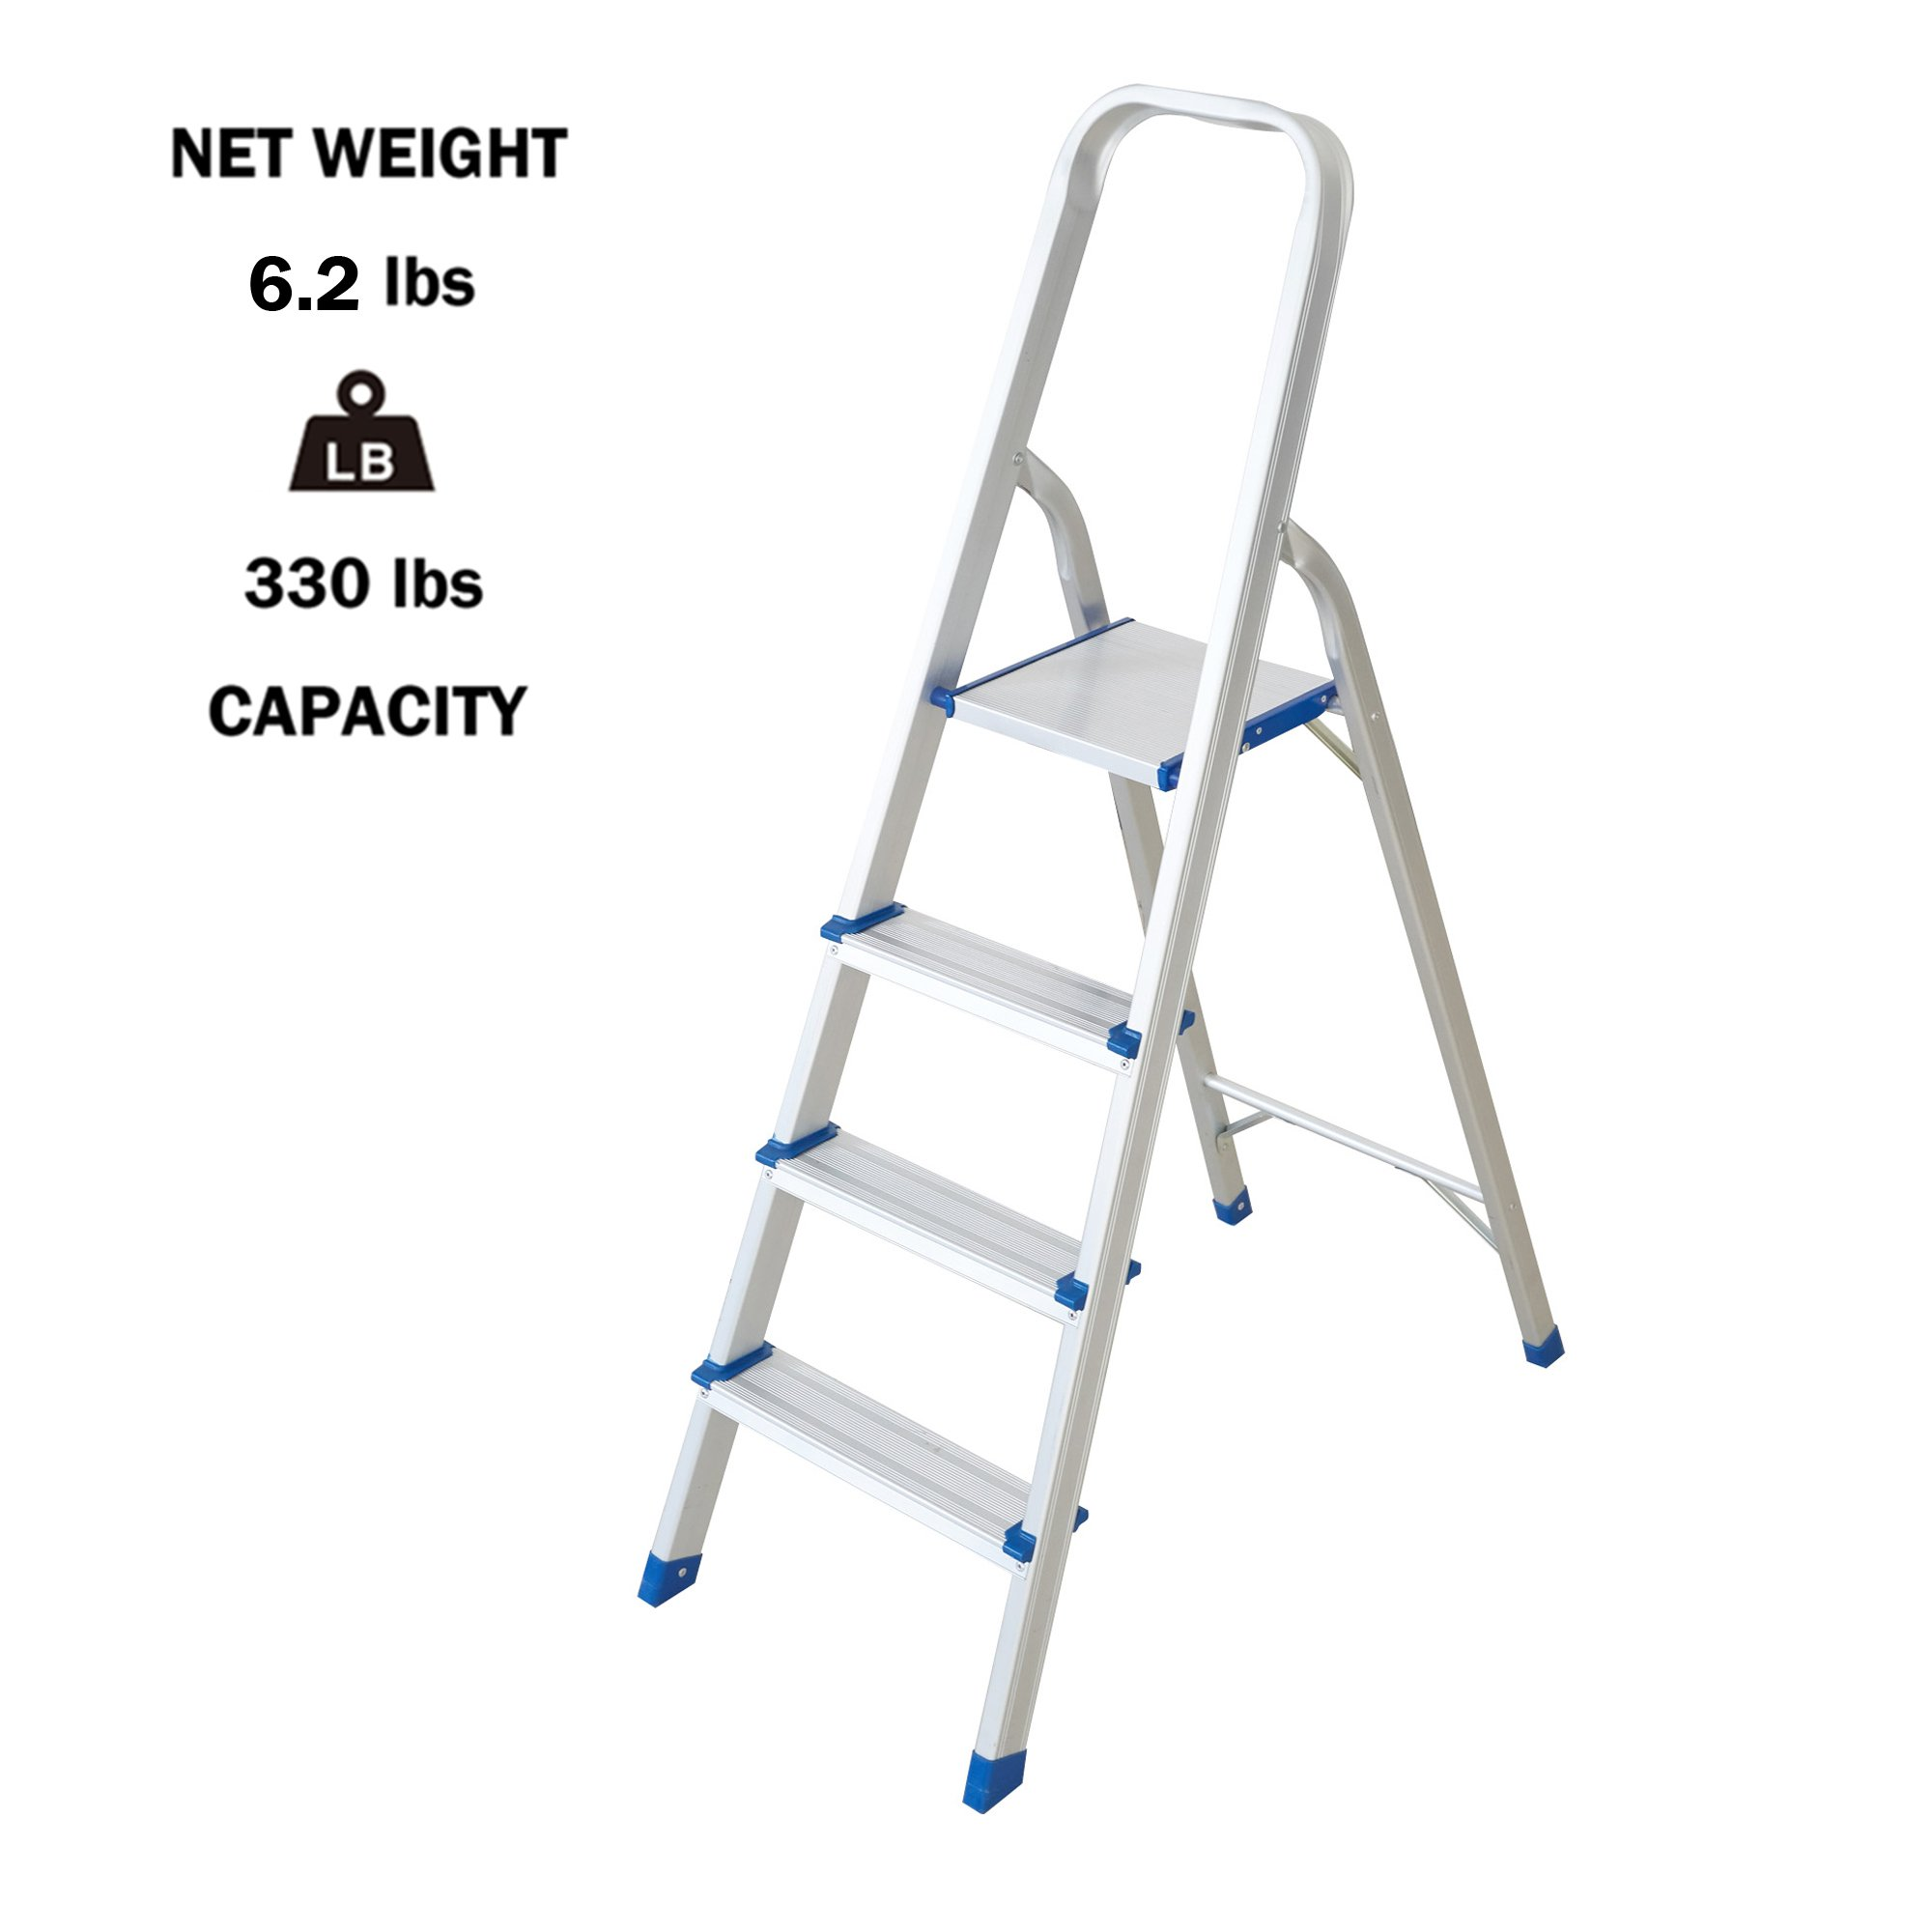 Lucky Tree Lightweight Step Ladder 4 Step Foldabe Tall Stepladders Non-Slip Aluminum Step Stools for Household and Office, 330lbs